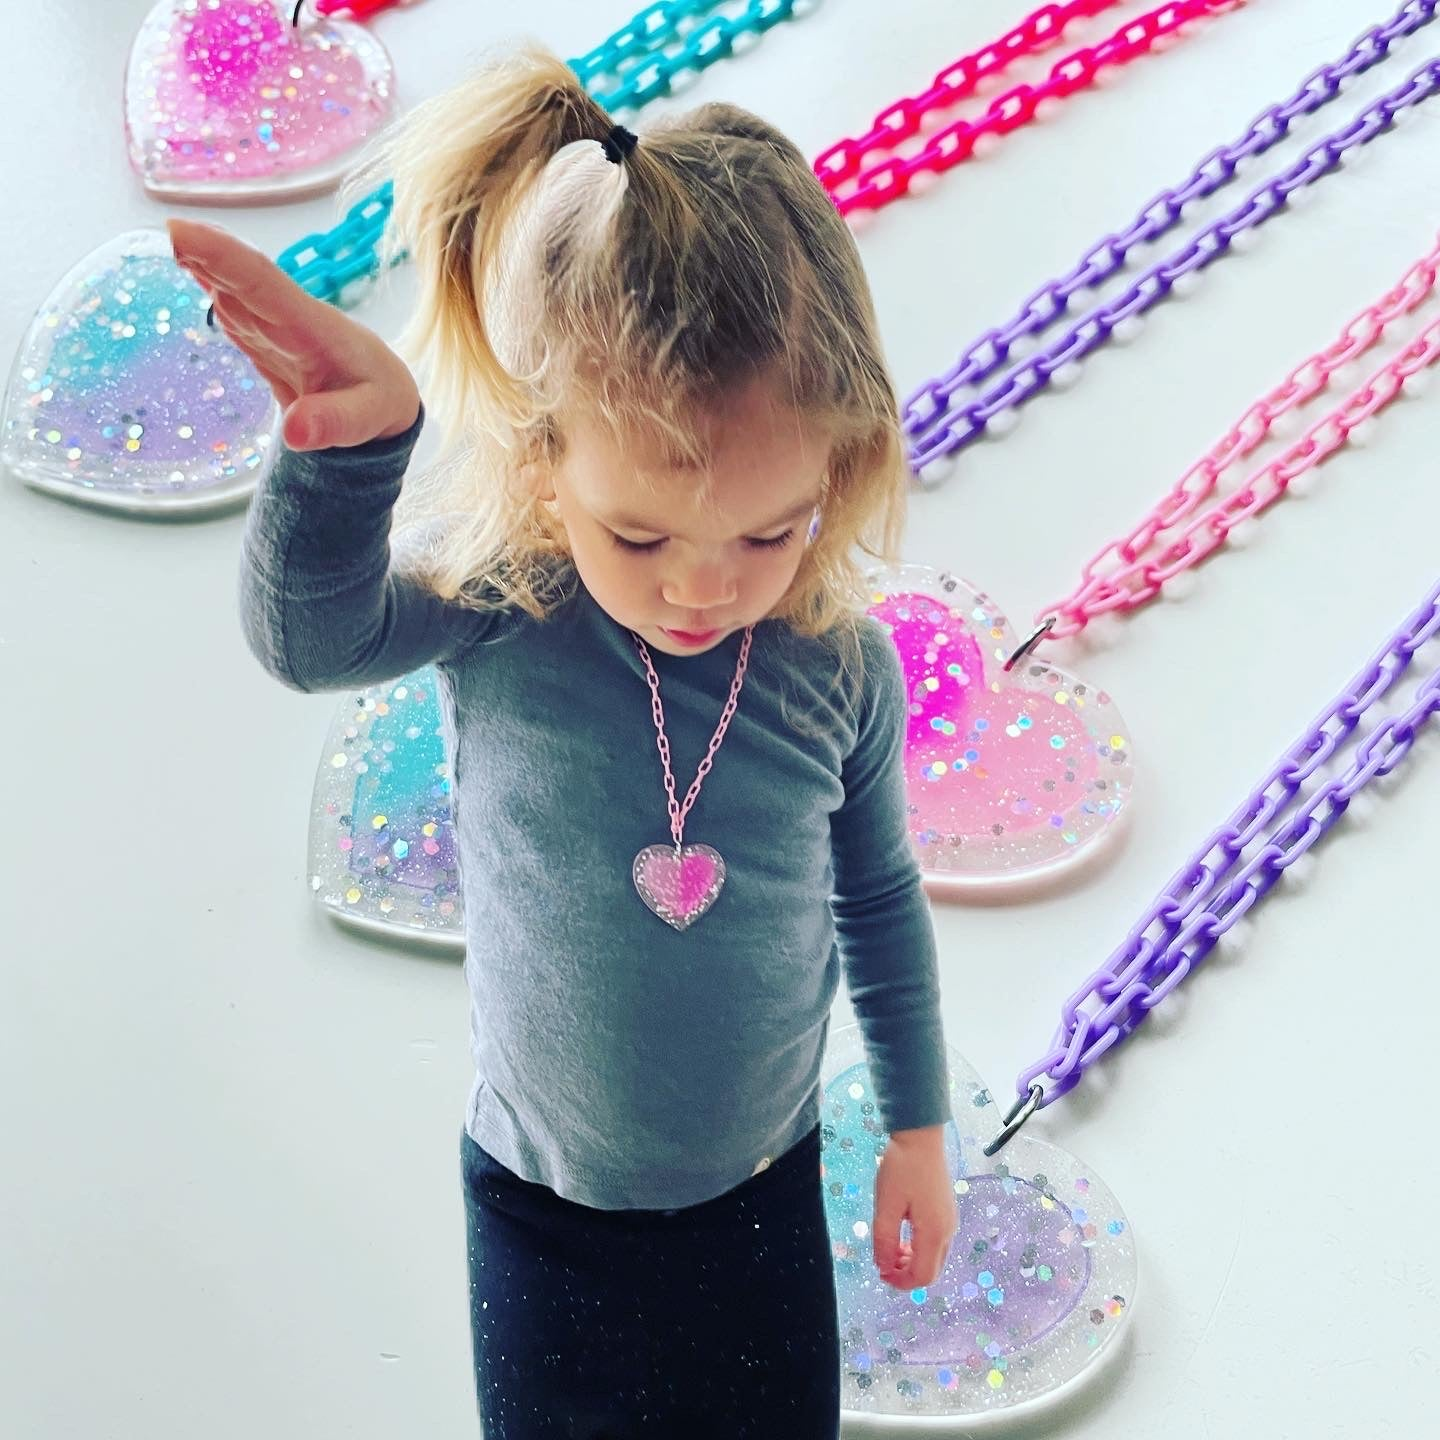 Rainbow Brite Glittery Heart Kids Necklace